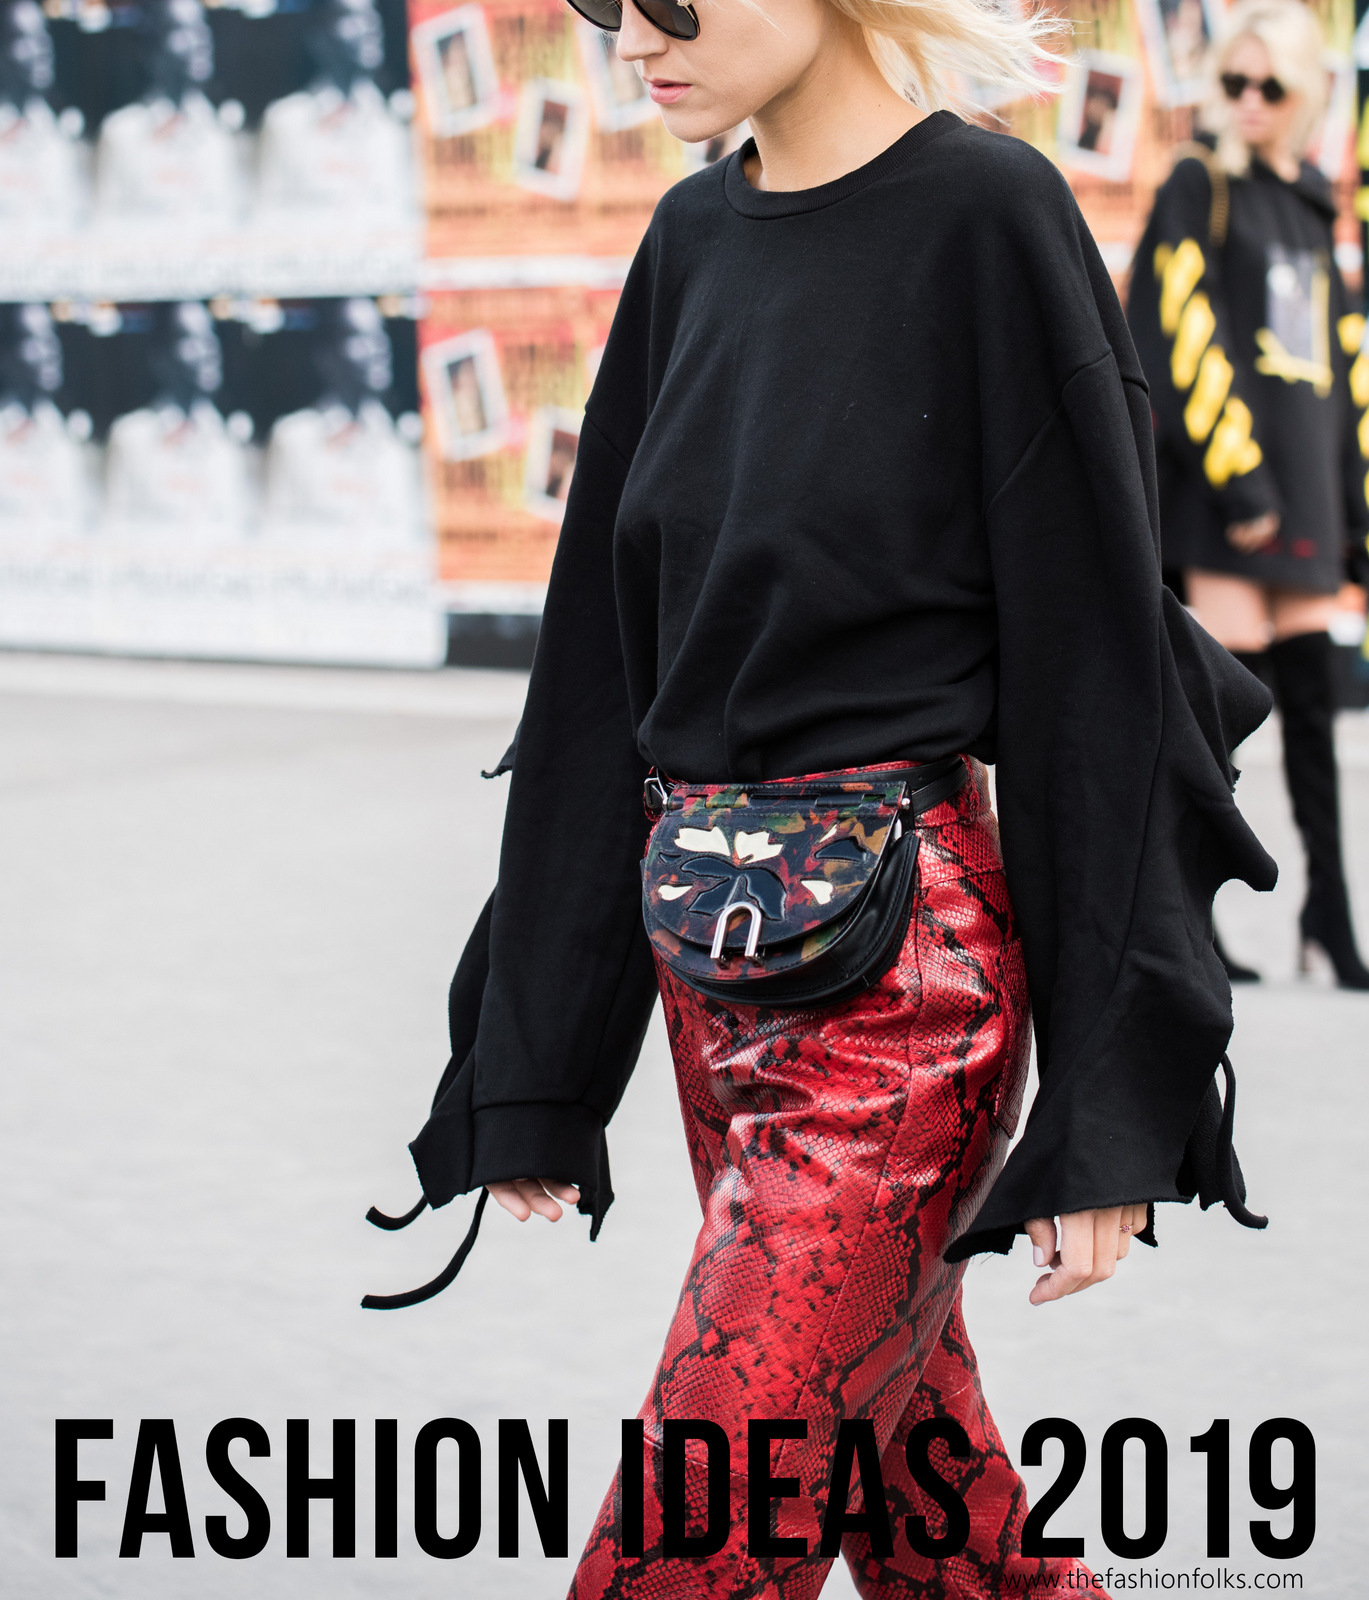 Fashion Ideas 2019